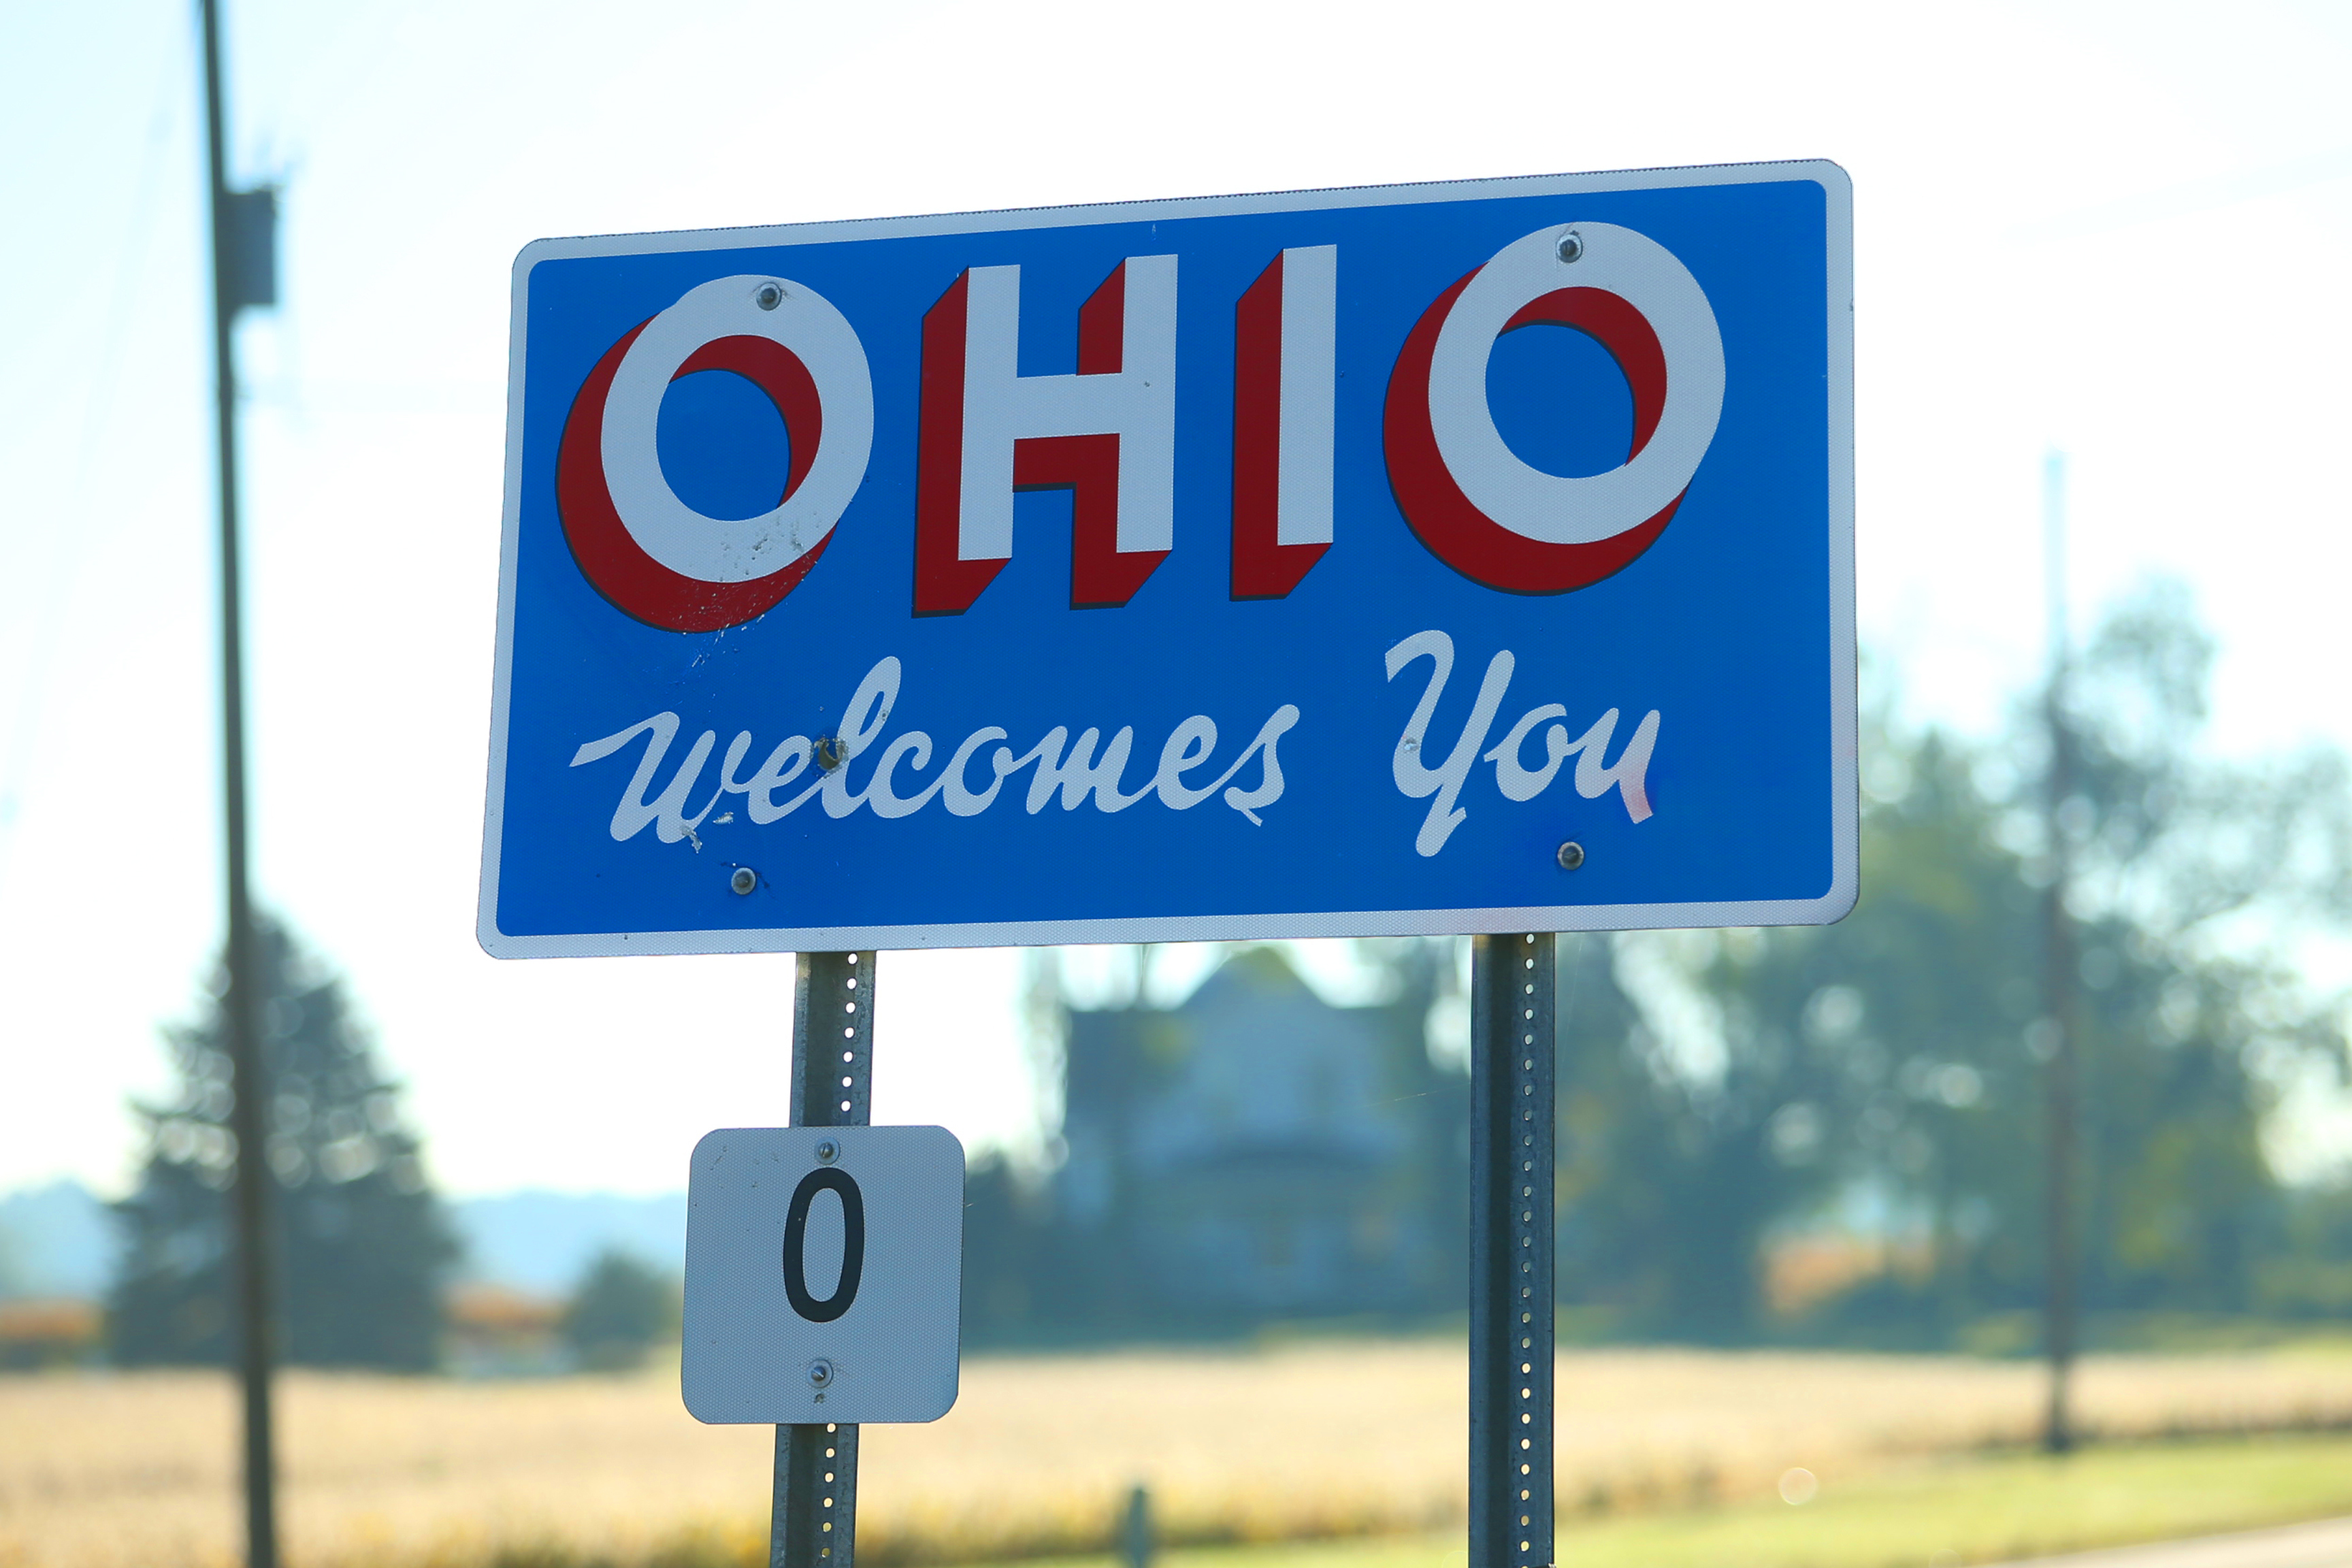 Overdose Deaths in Ohio and the Rural Midwest Rising Steadily